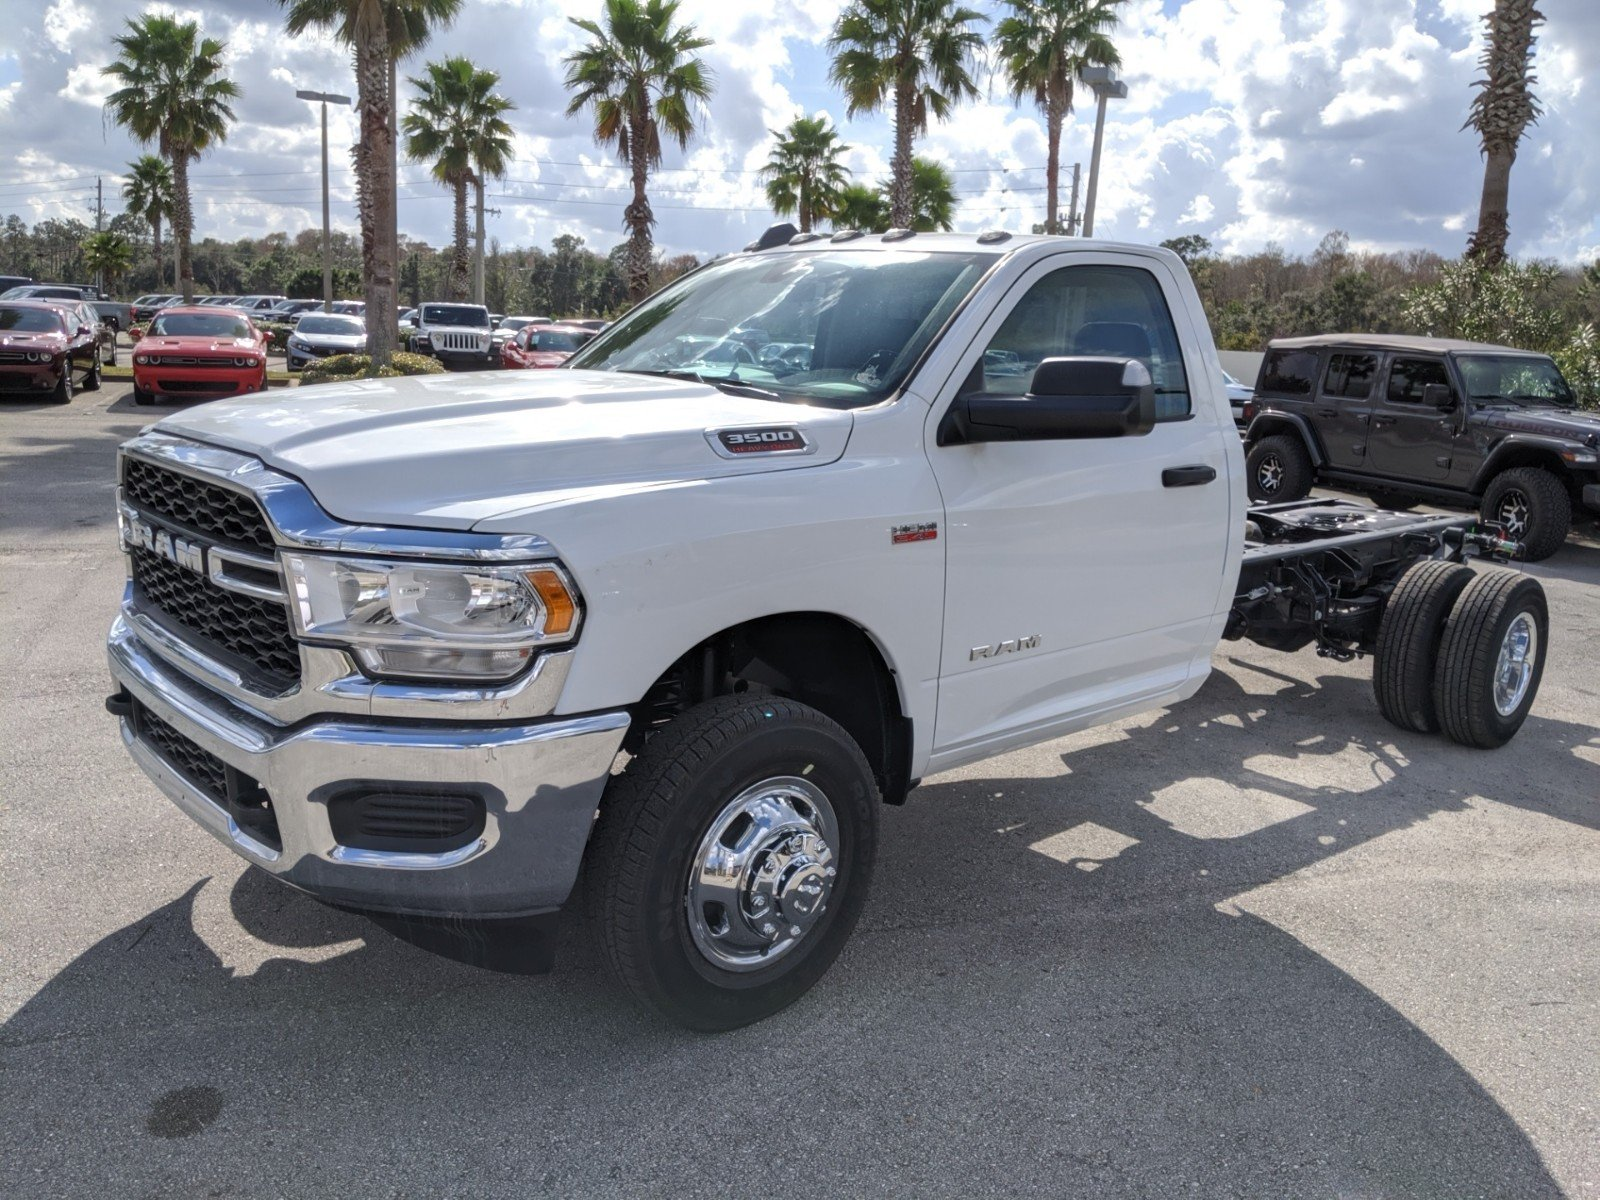 2020 Ram 3500 Regular Cab DRW 4x2, Cab Chassis #R20115 - photo 1